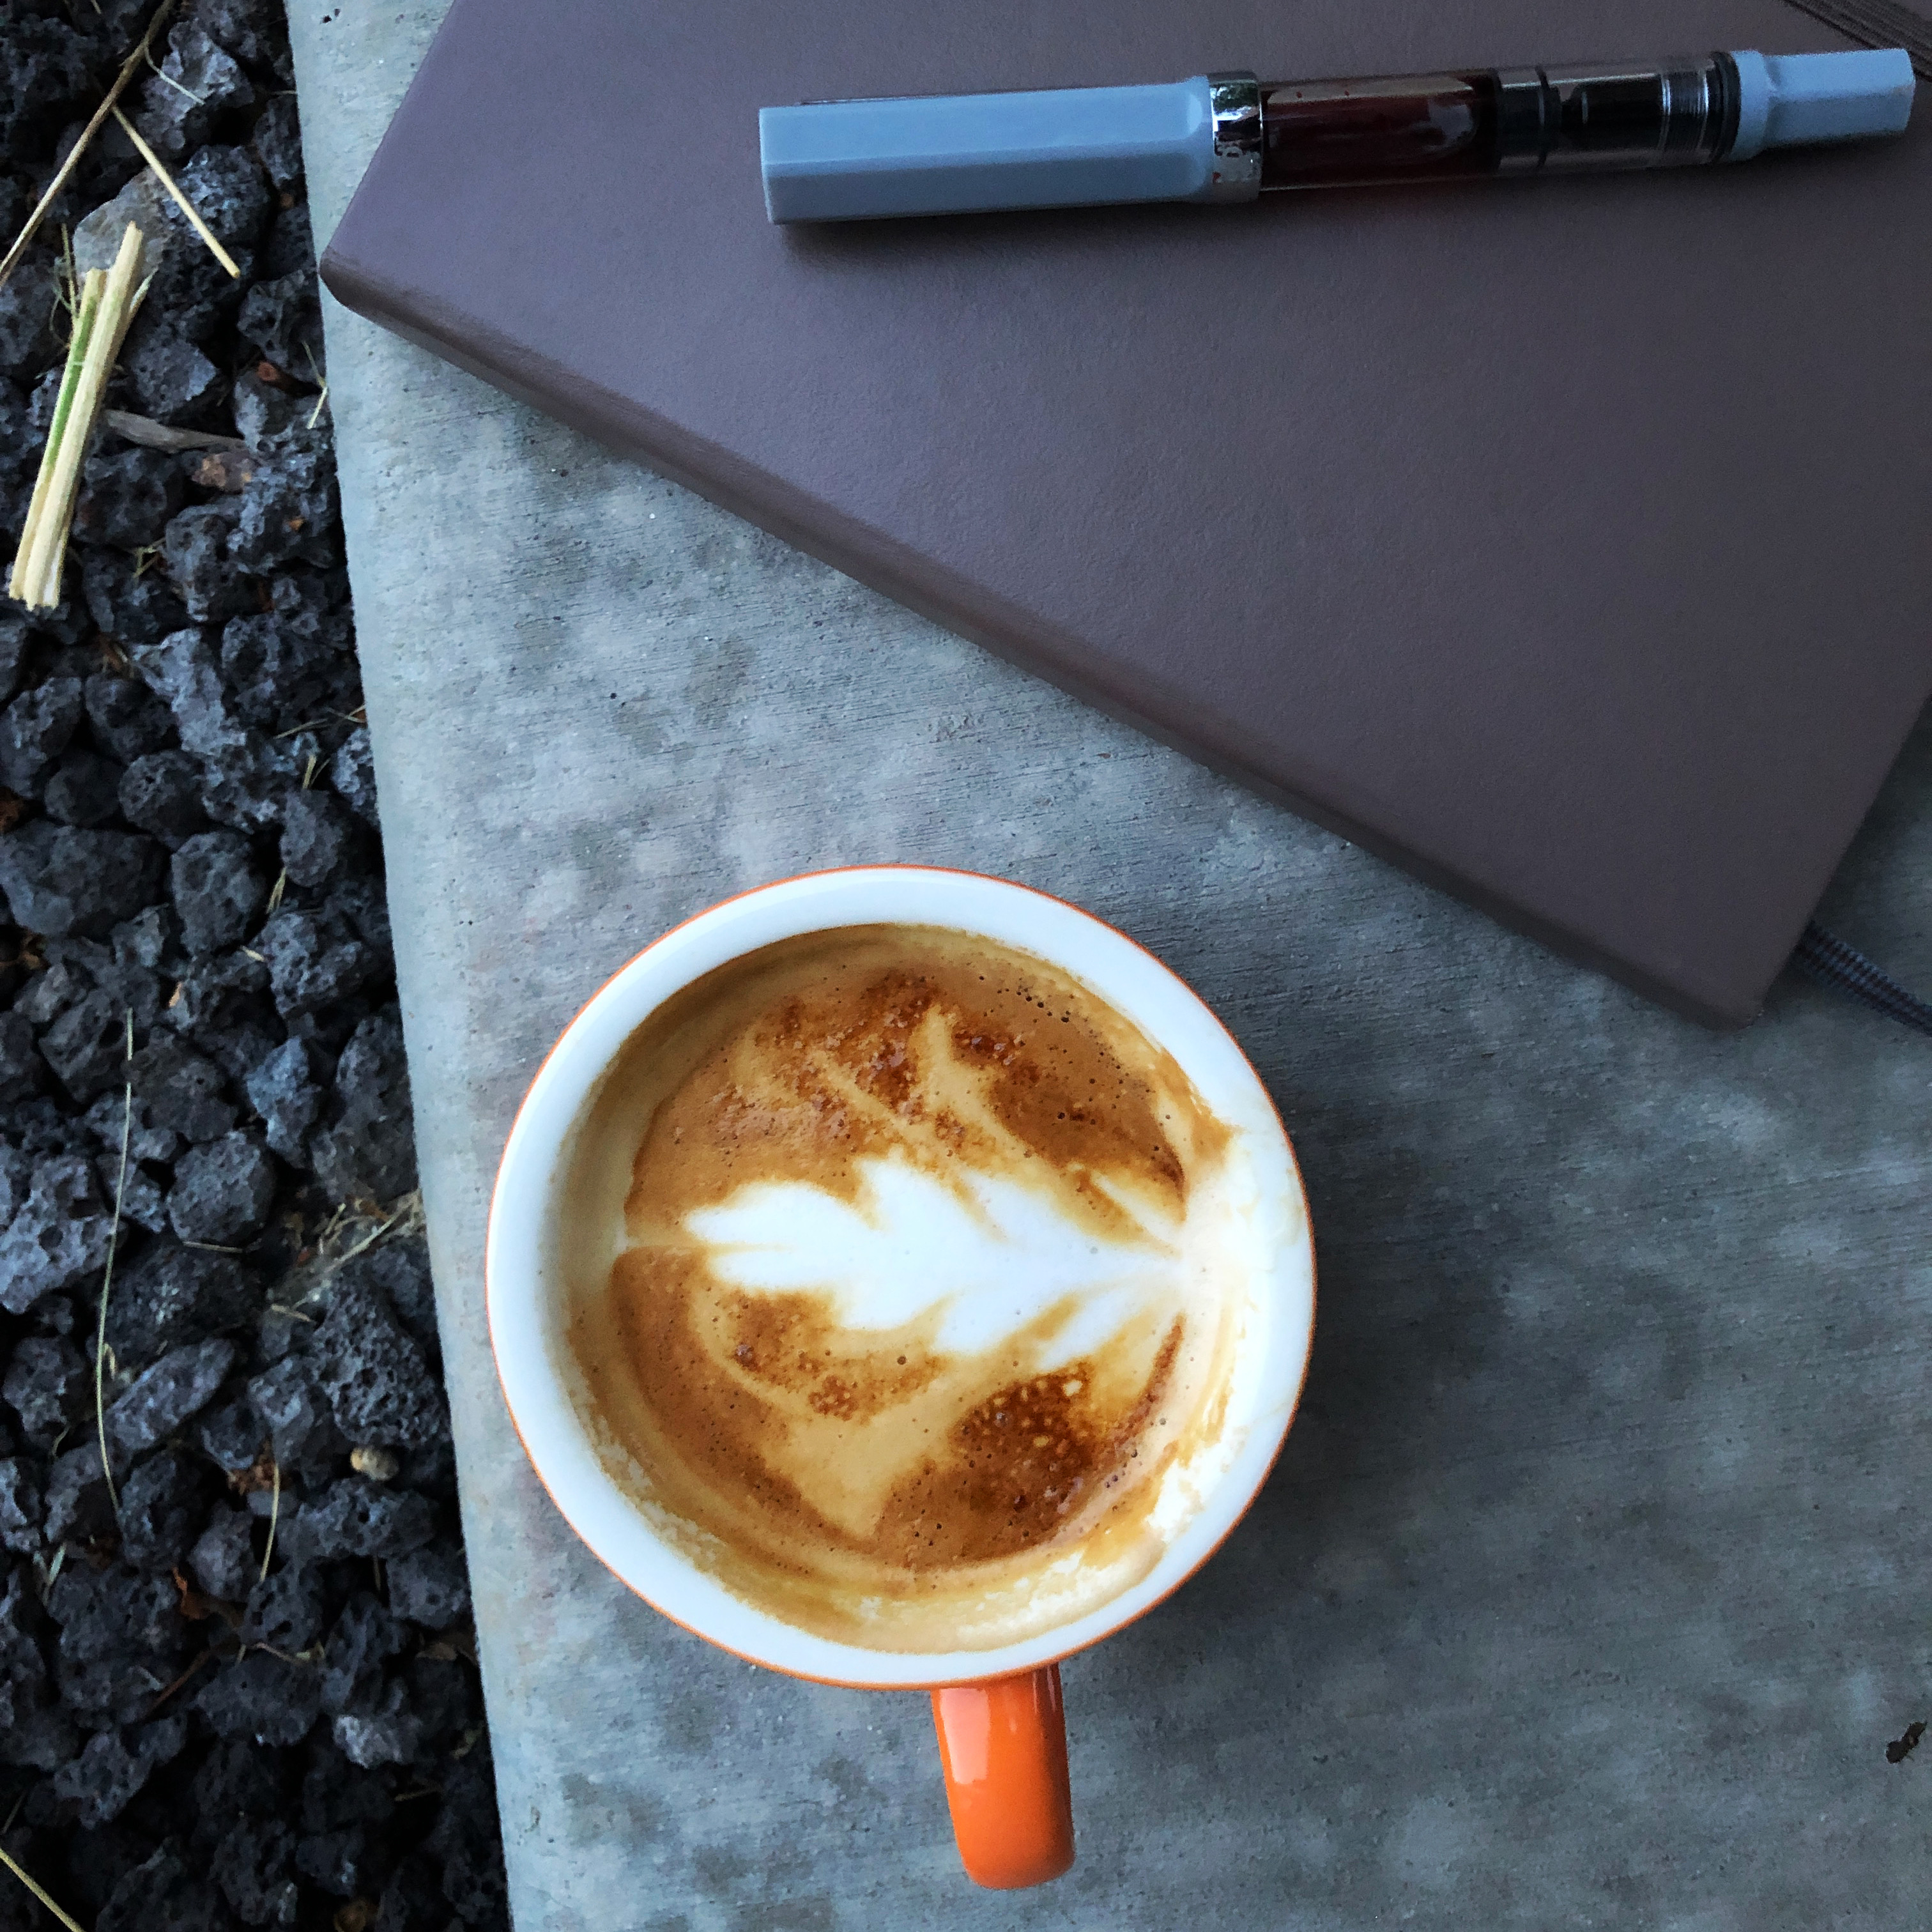 Cappuccino beside a journal and pen on grey concrete